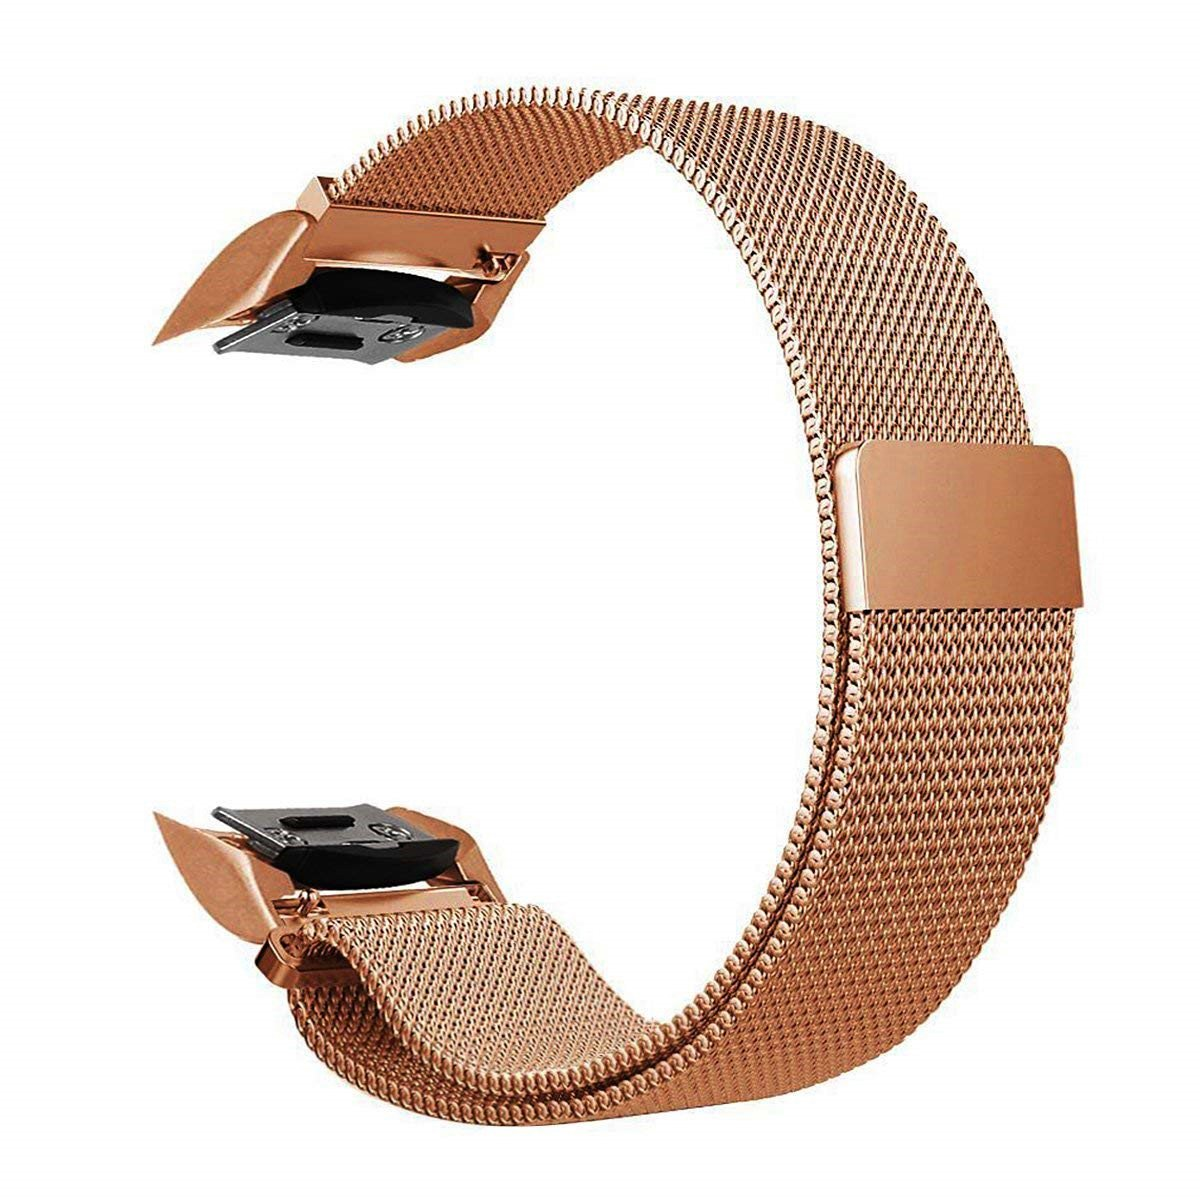 for Samsung Gear S2 Watch Band, Milanese Loop Replacement Wristband Magnetic Closure Clasp with Adapters for Samsung Gear S2 SM-R720 / SM-R730 Smart Watch